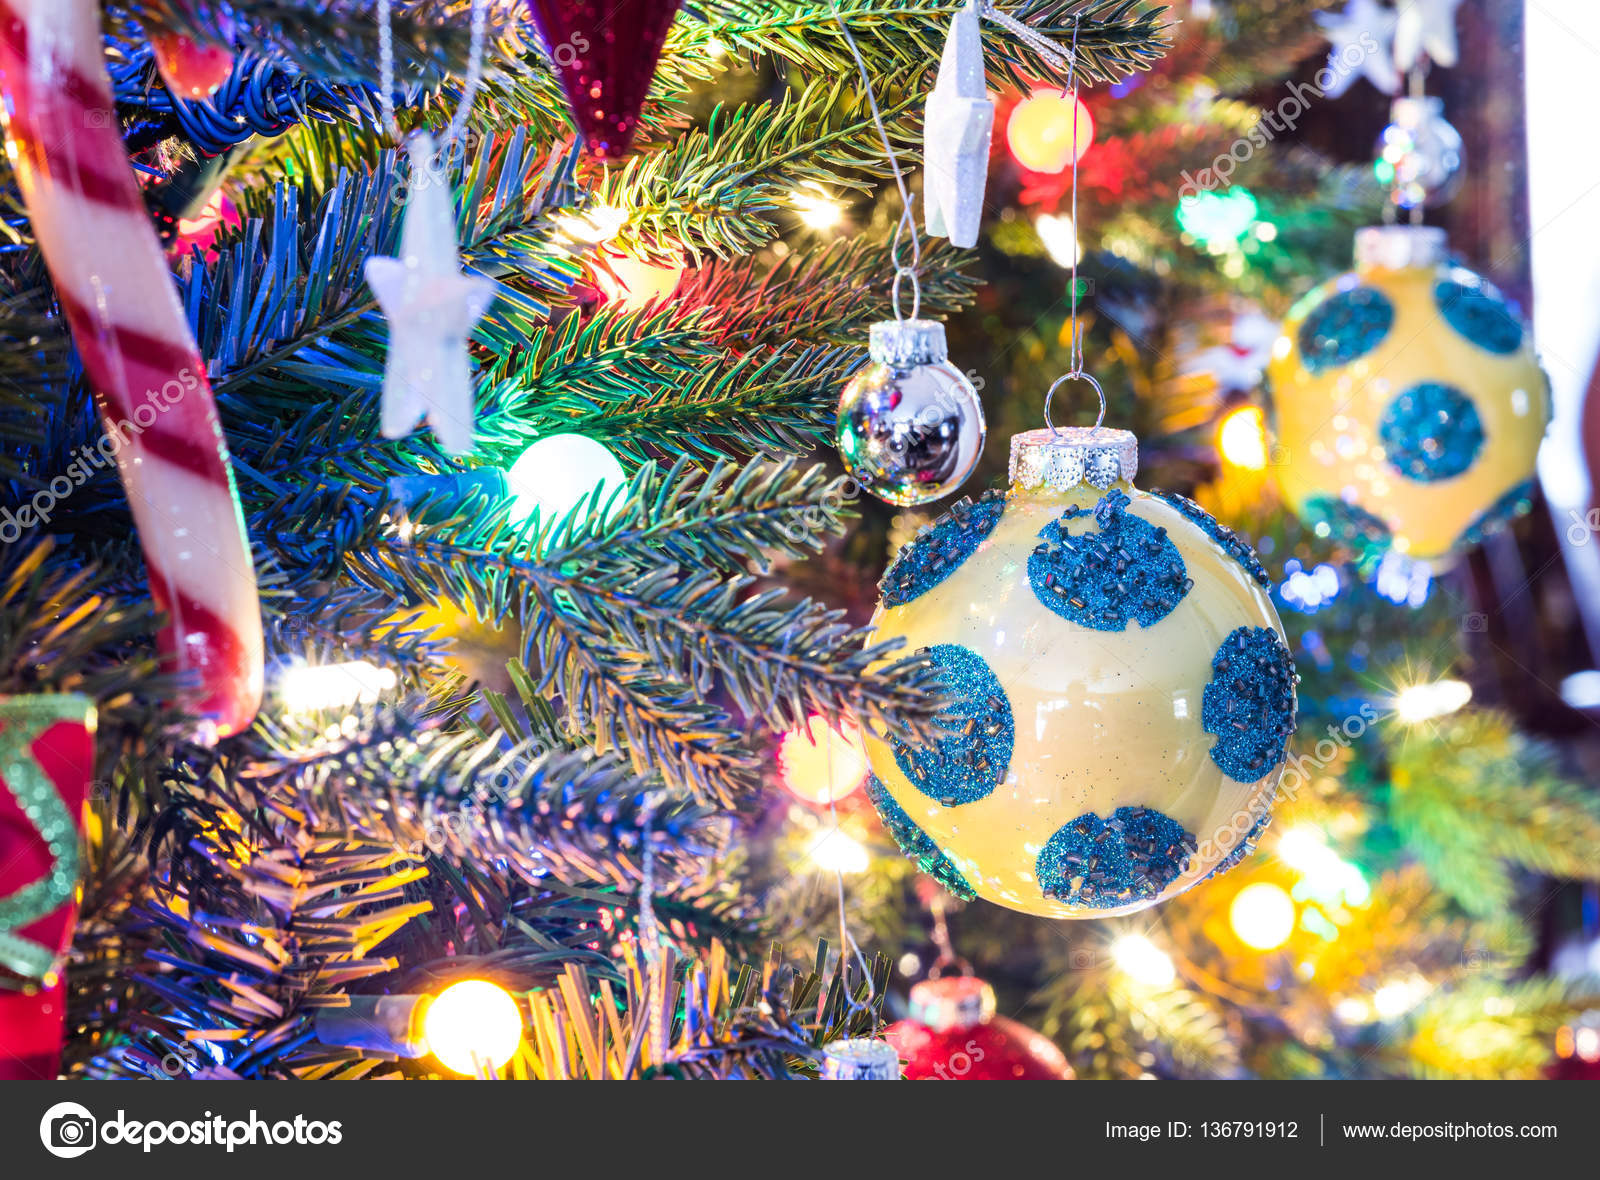 Colorful Christmas Tree Decorations.Holiday Season Christmas Tree Decorations Glow Under